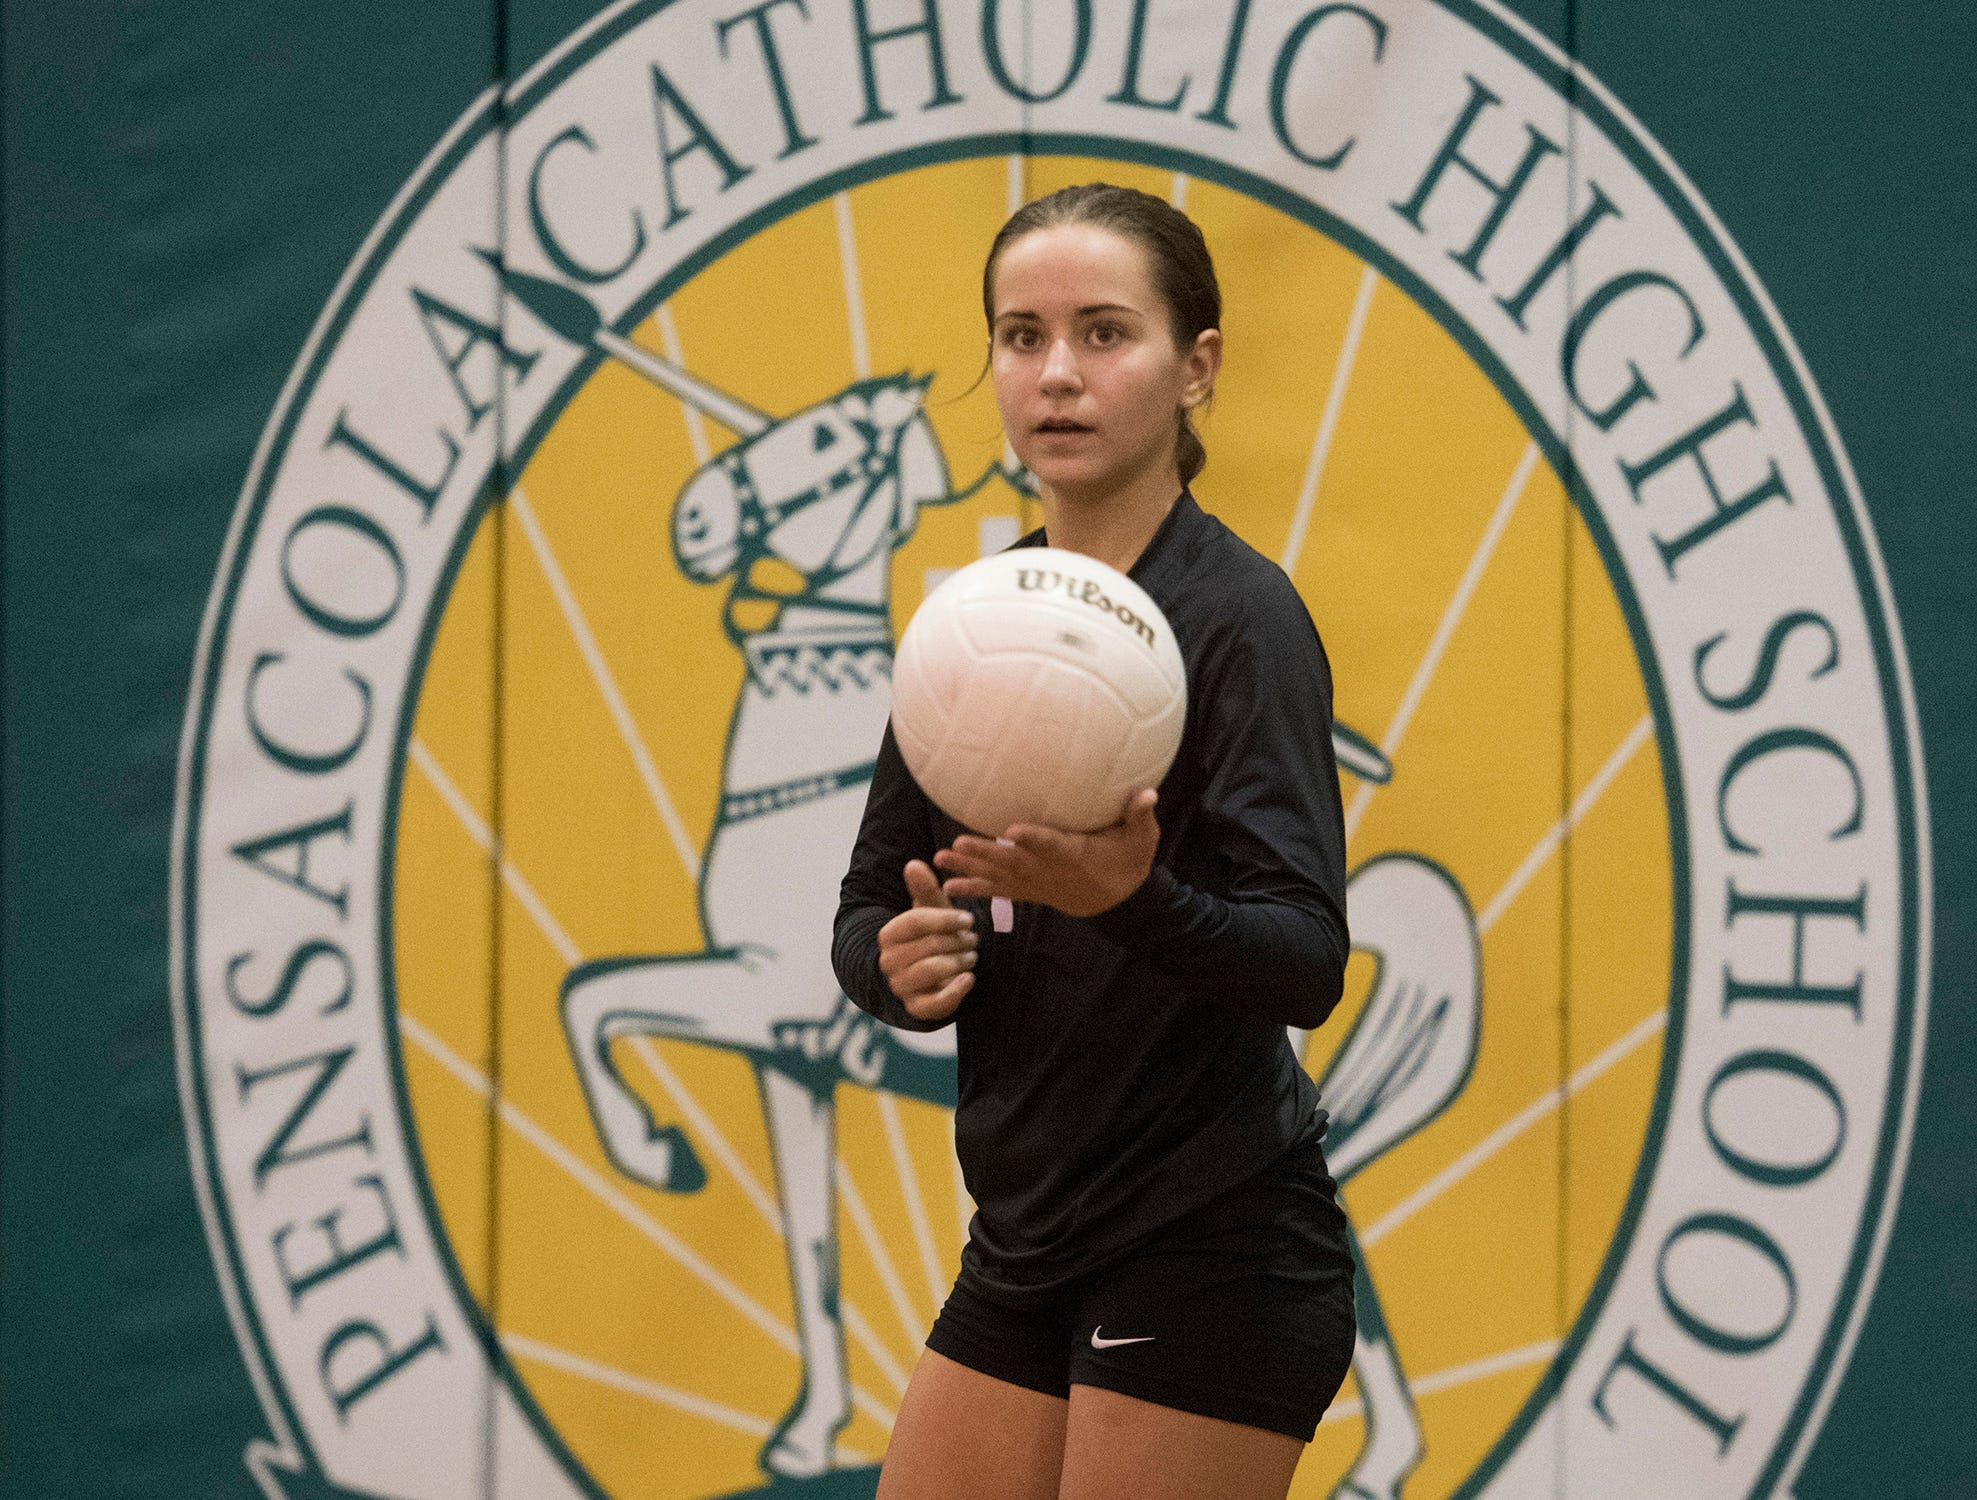 Catholic Freshman, Madison Galloway, (No.1) gets instruction from the sidelines before service during Wednesday's volleyball match against Pace. The Crusaders finished off the Patriots in three-straight games, 25-12, 25-19, 25-23.